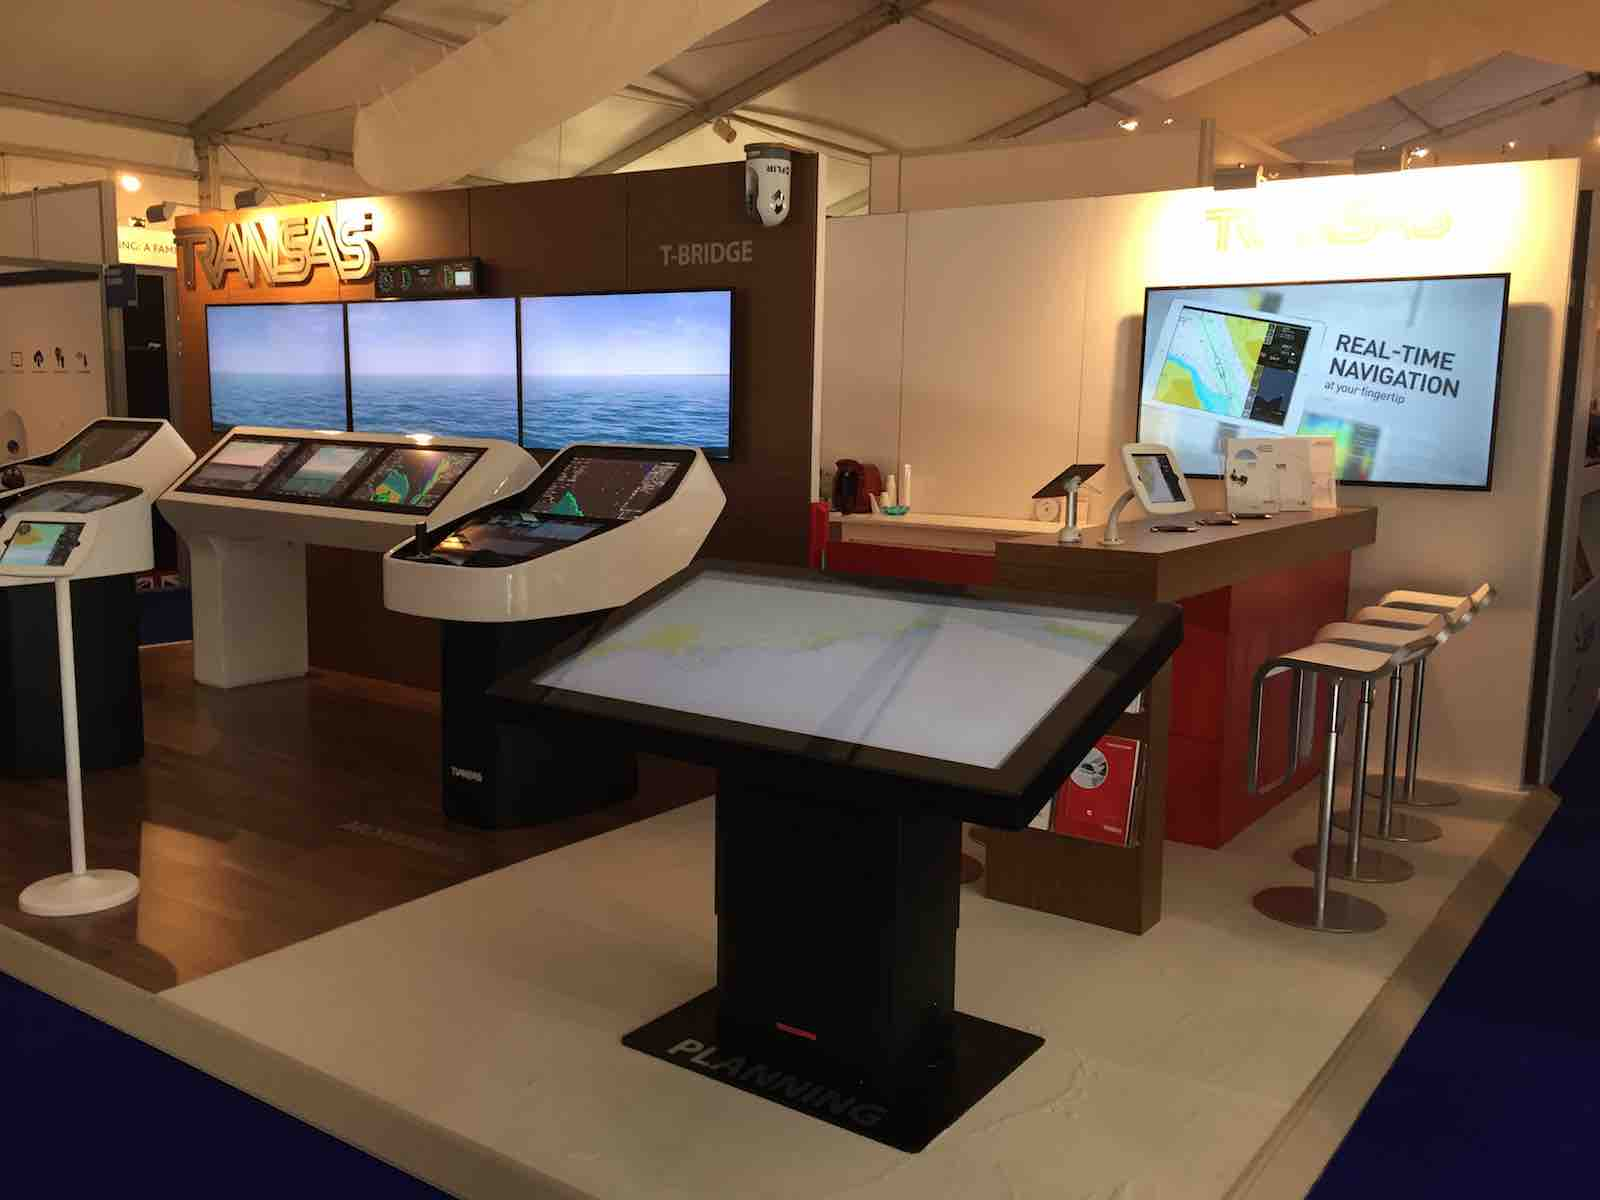 Transas integrated technologies presented at the Monaco Yacht Show